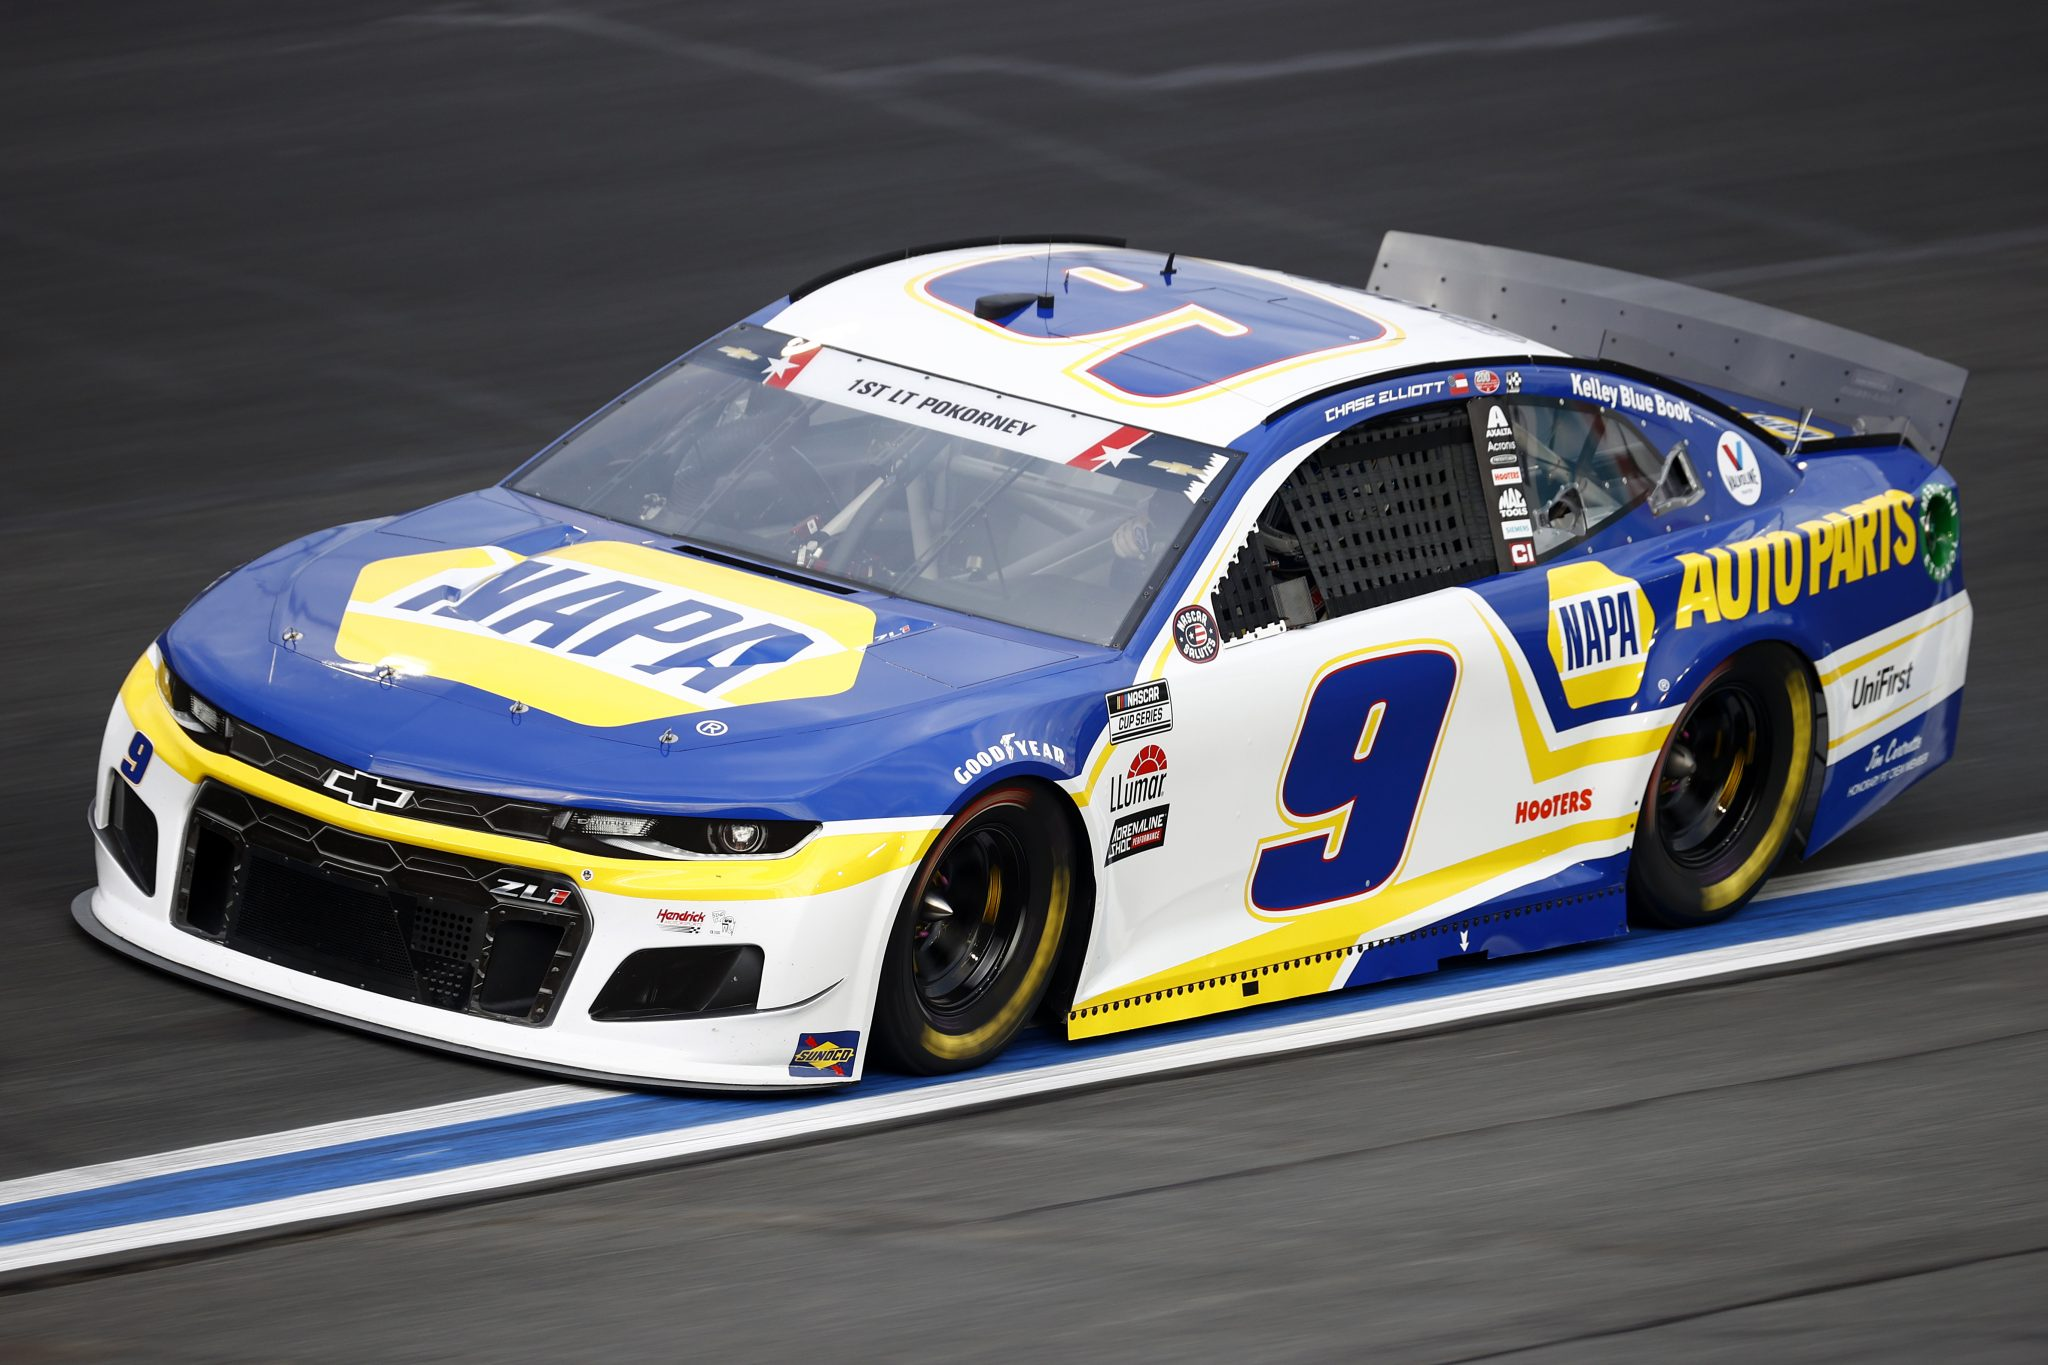 CONCORD, NORTH CAROLINA - MAY 28: Chase Elliott, driver of the #9 NAPA Auto Parts Chevrolet, drives during practice for the NASCAR Cup Series Coca-Cola 600 at Charlotte Motor Speedway on May 28, 2021 in Concord, North Carolina. (Photo by Jared C. Tilton/Getty Images) | Getty Images